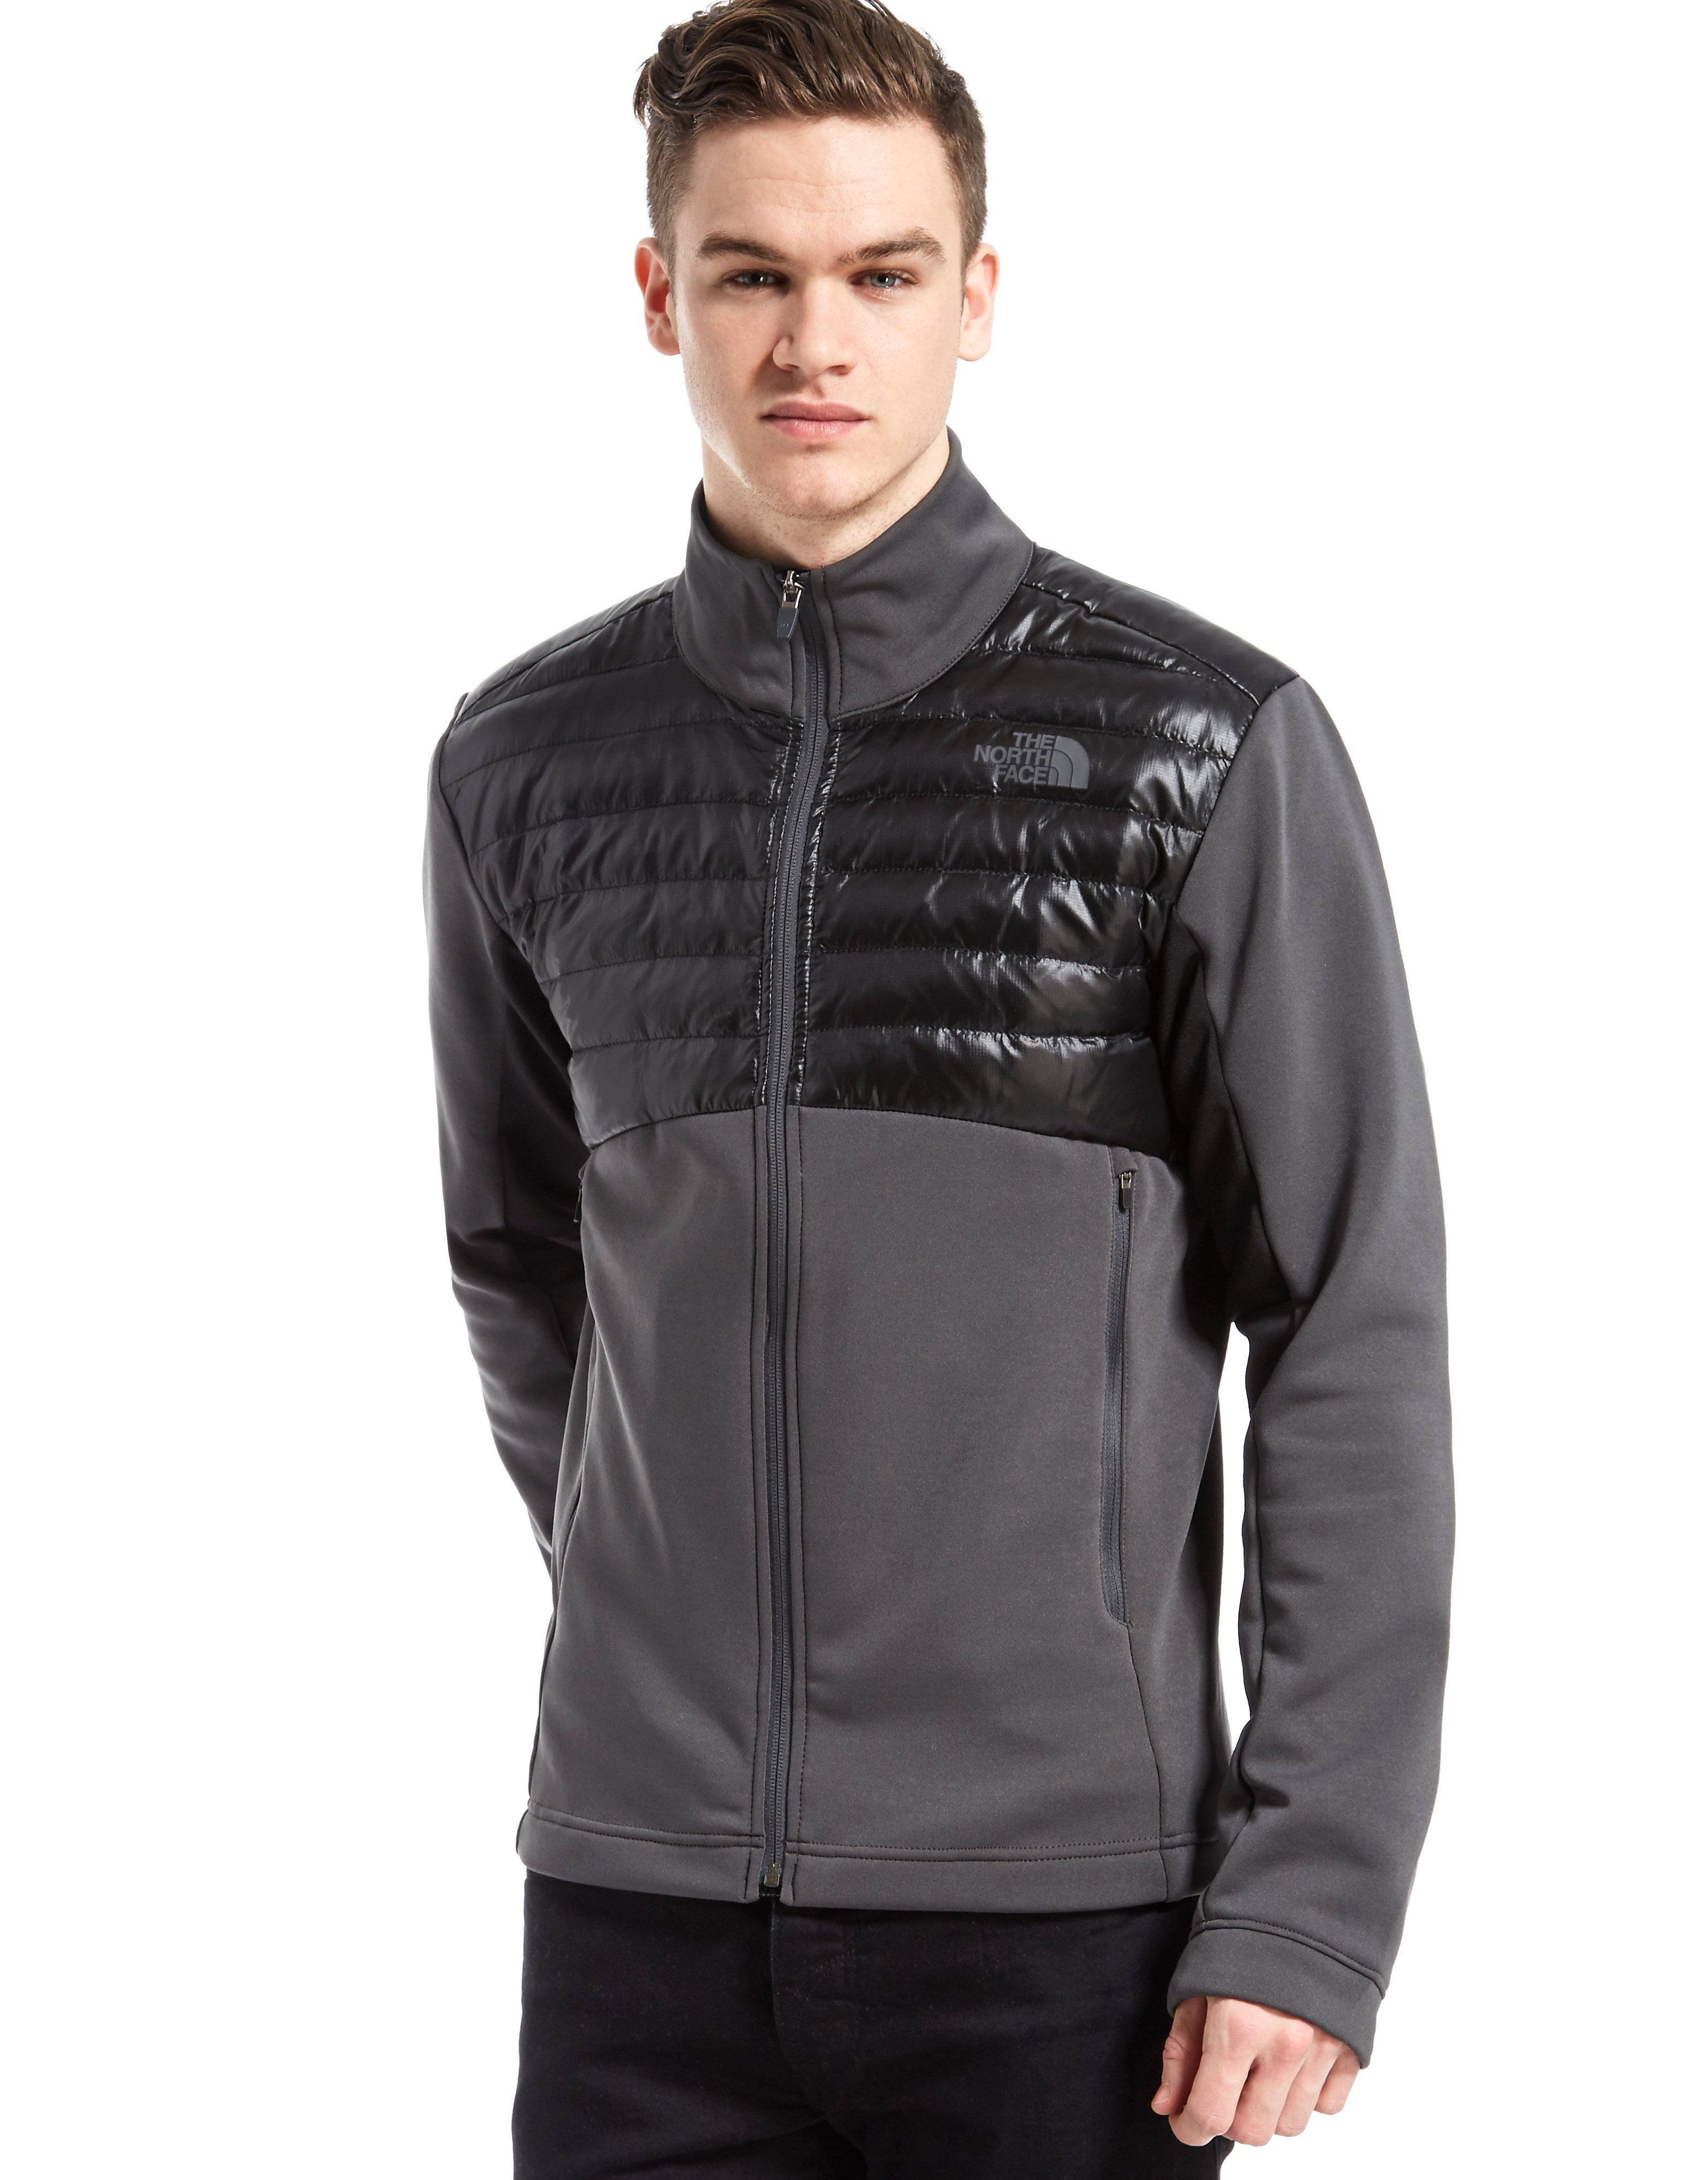 The North Face Hybrid Jacket